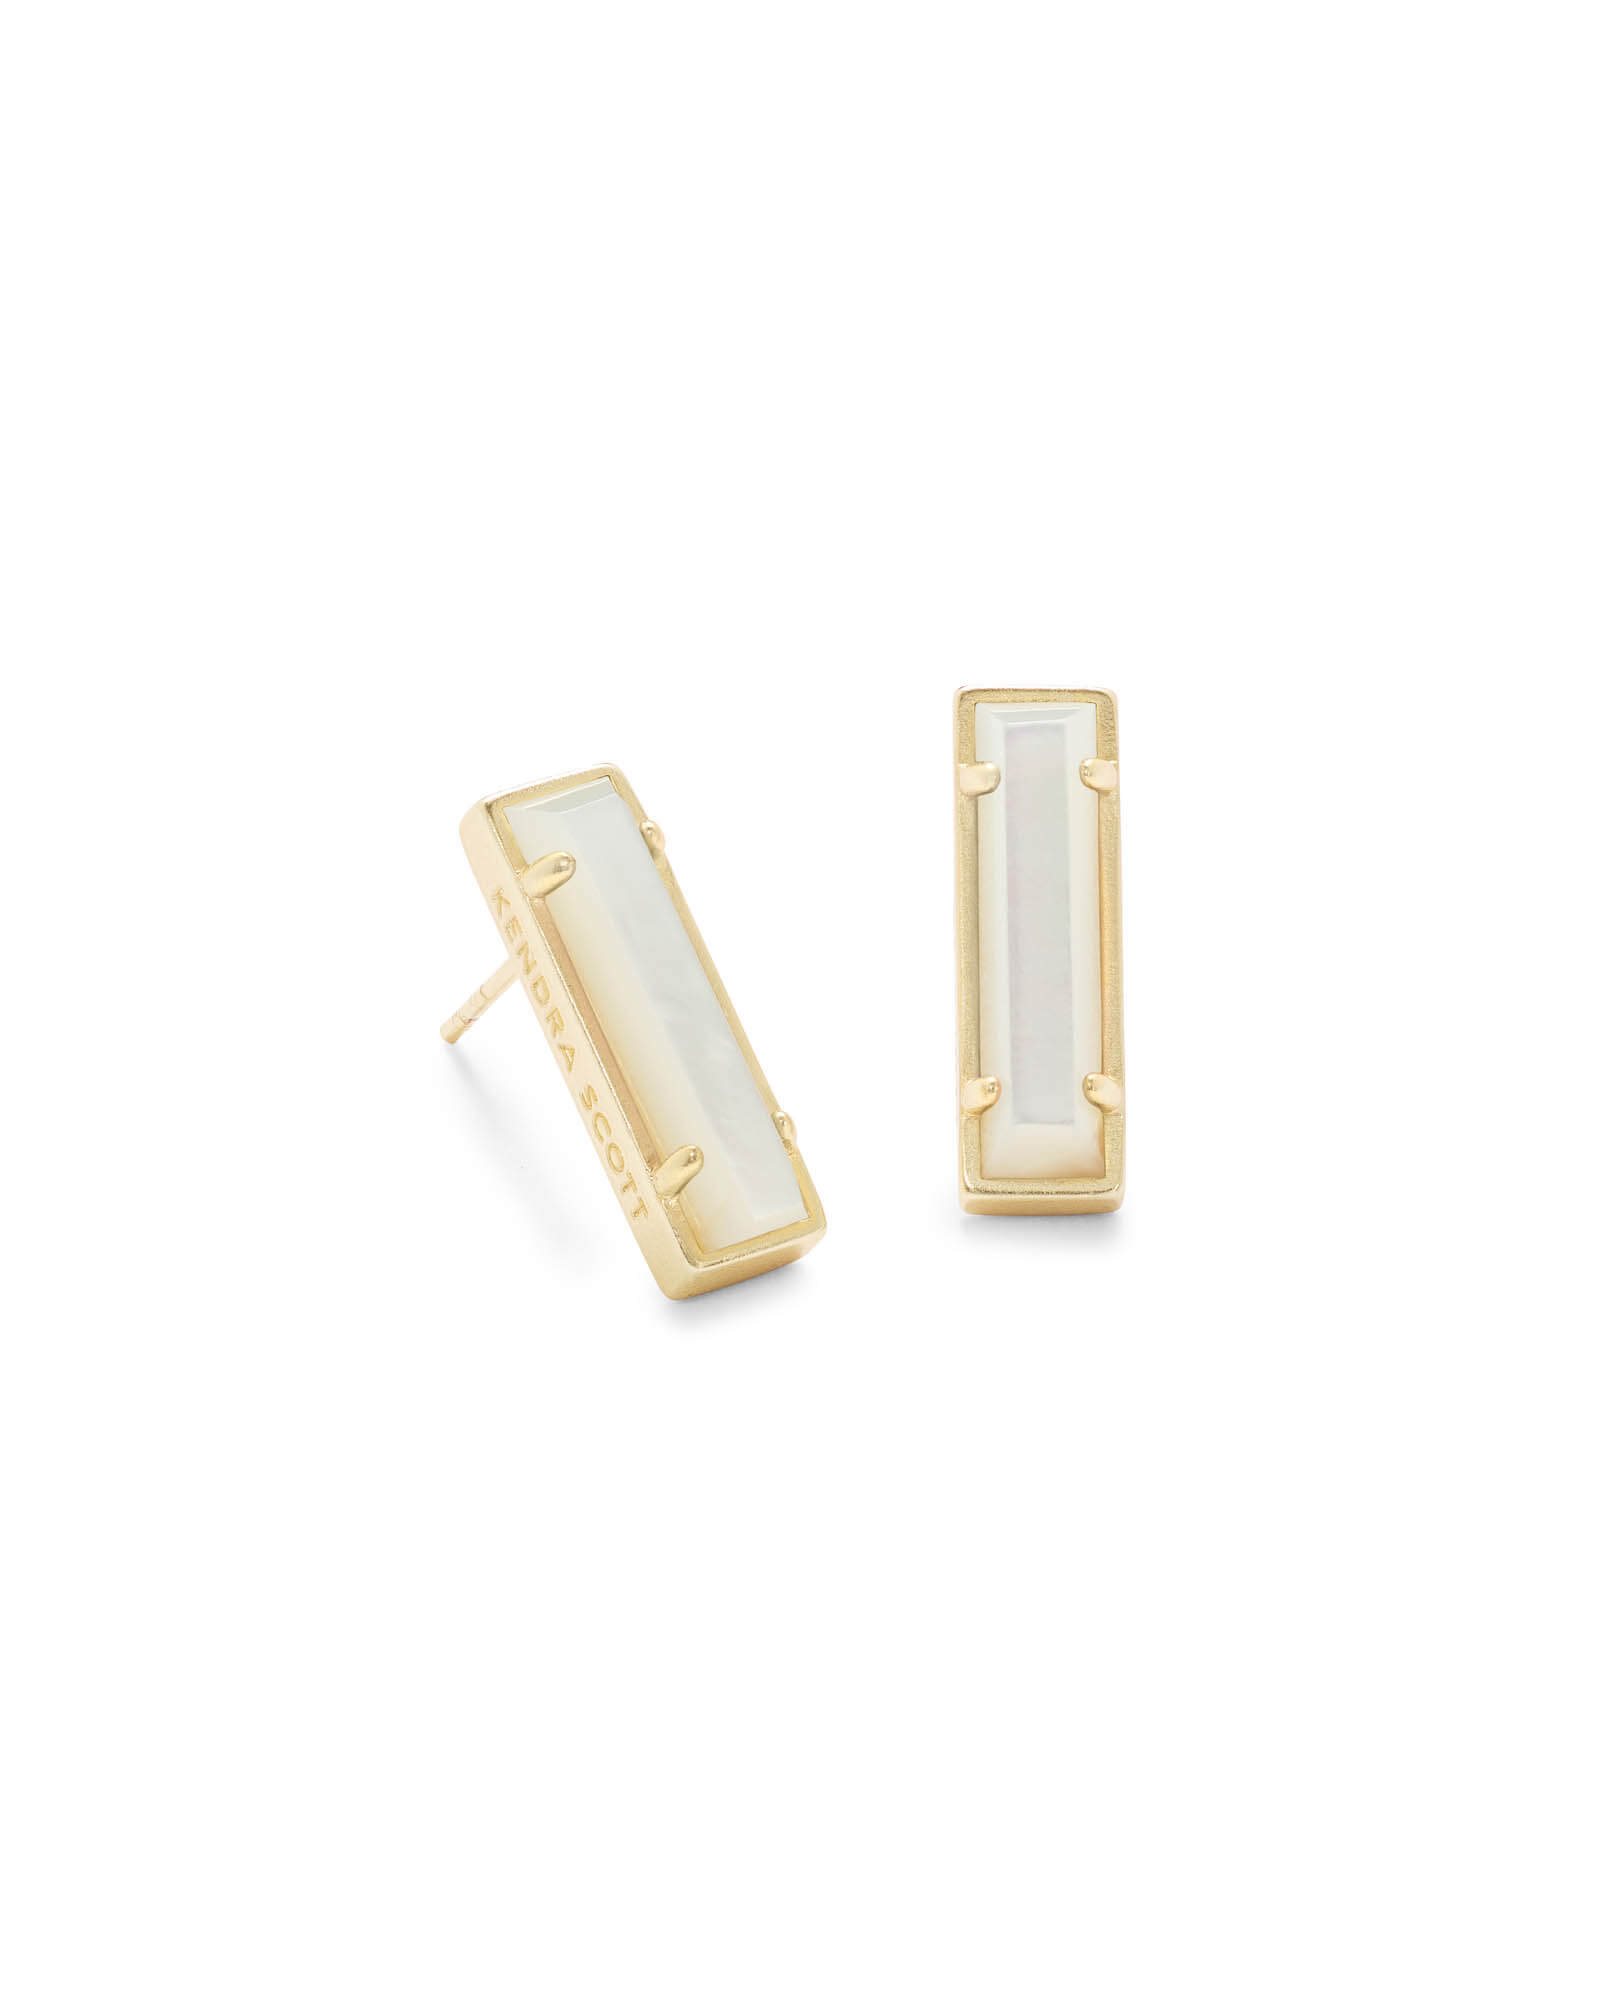 Lady Gold Stud Earrings in Ivory Pearl